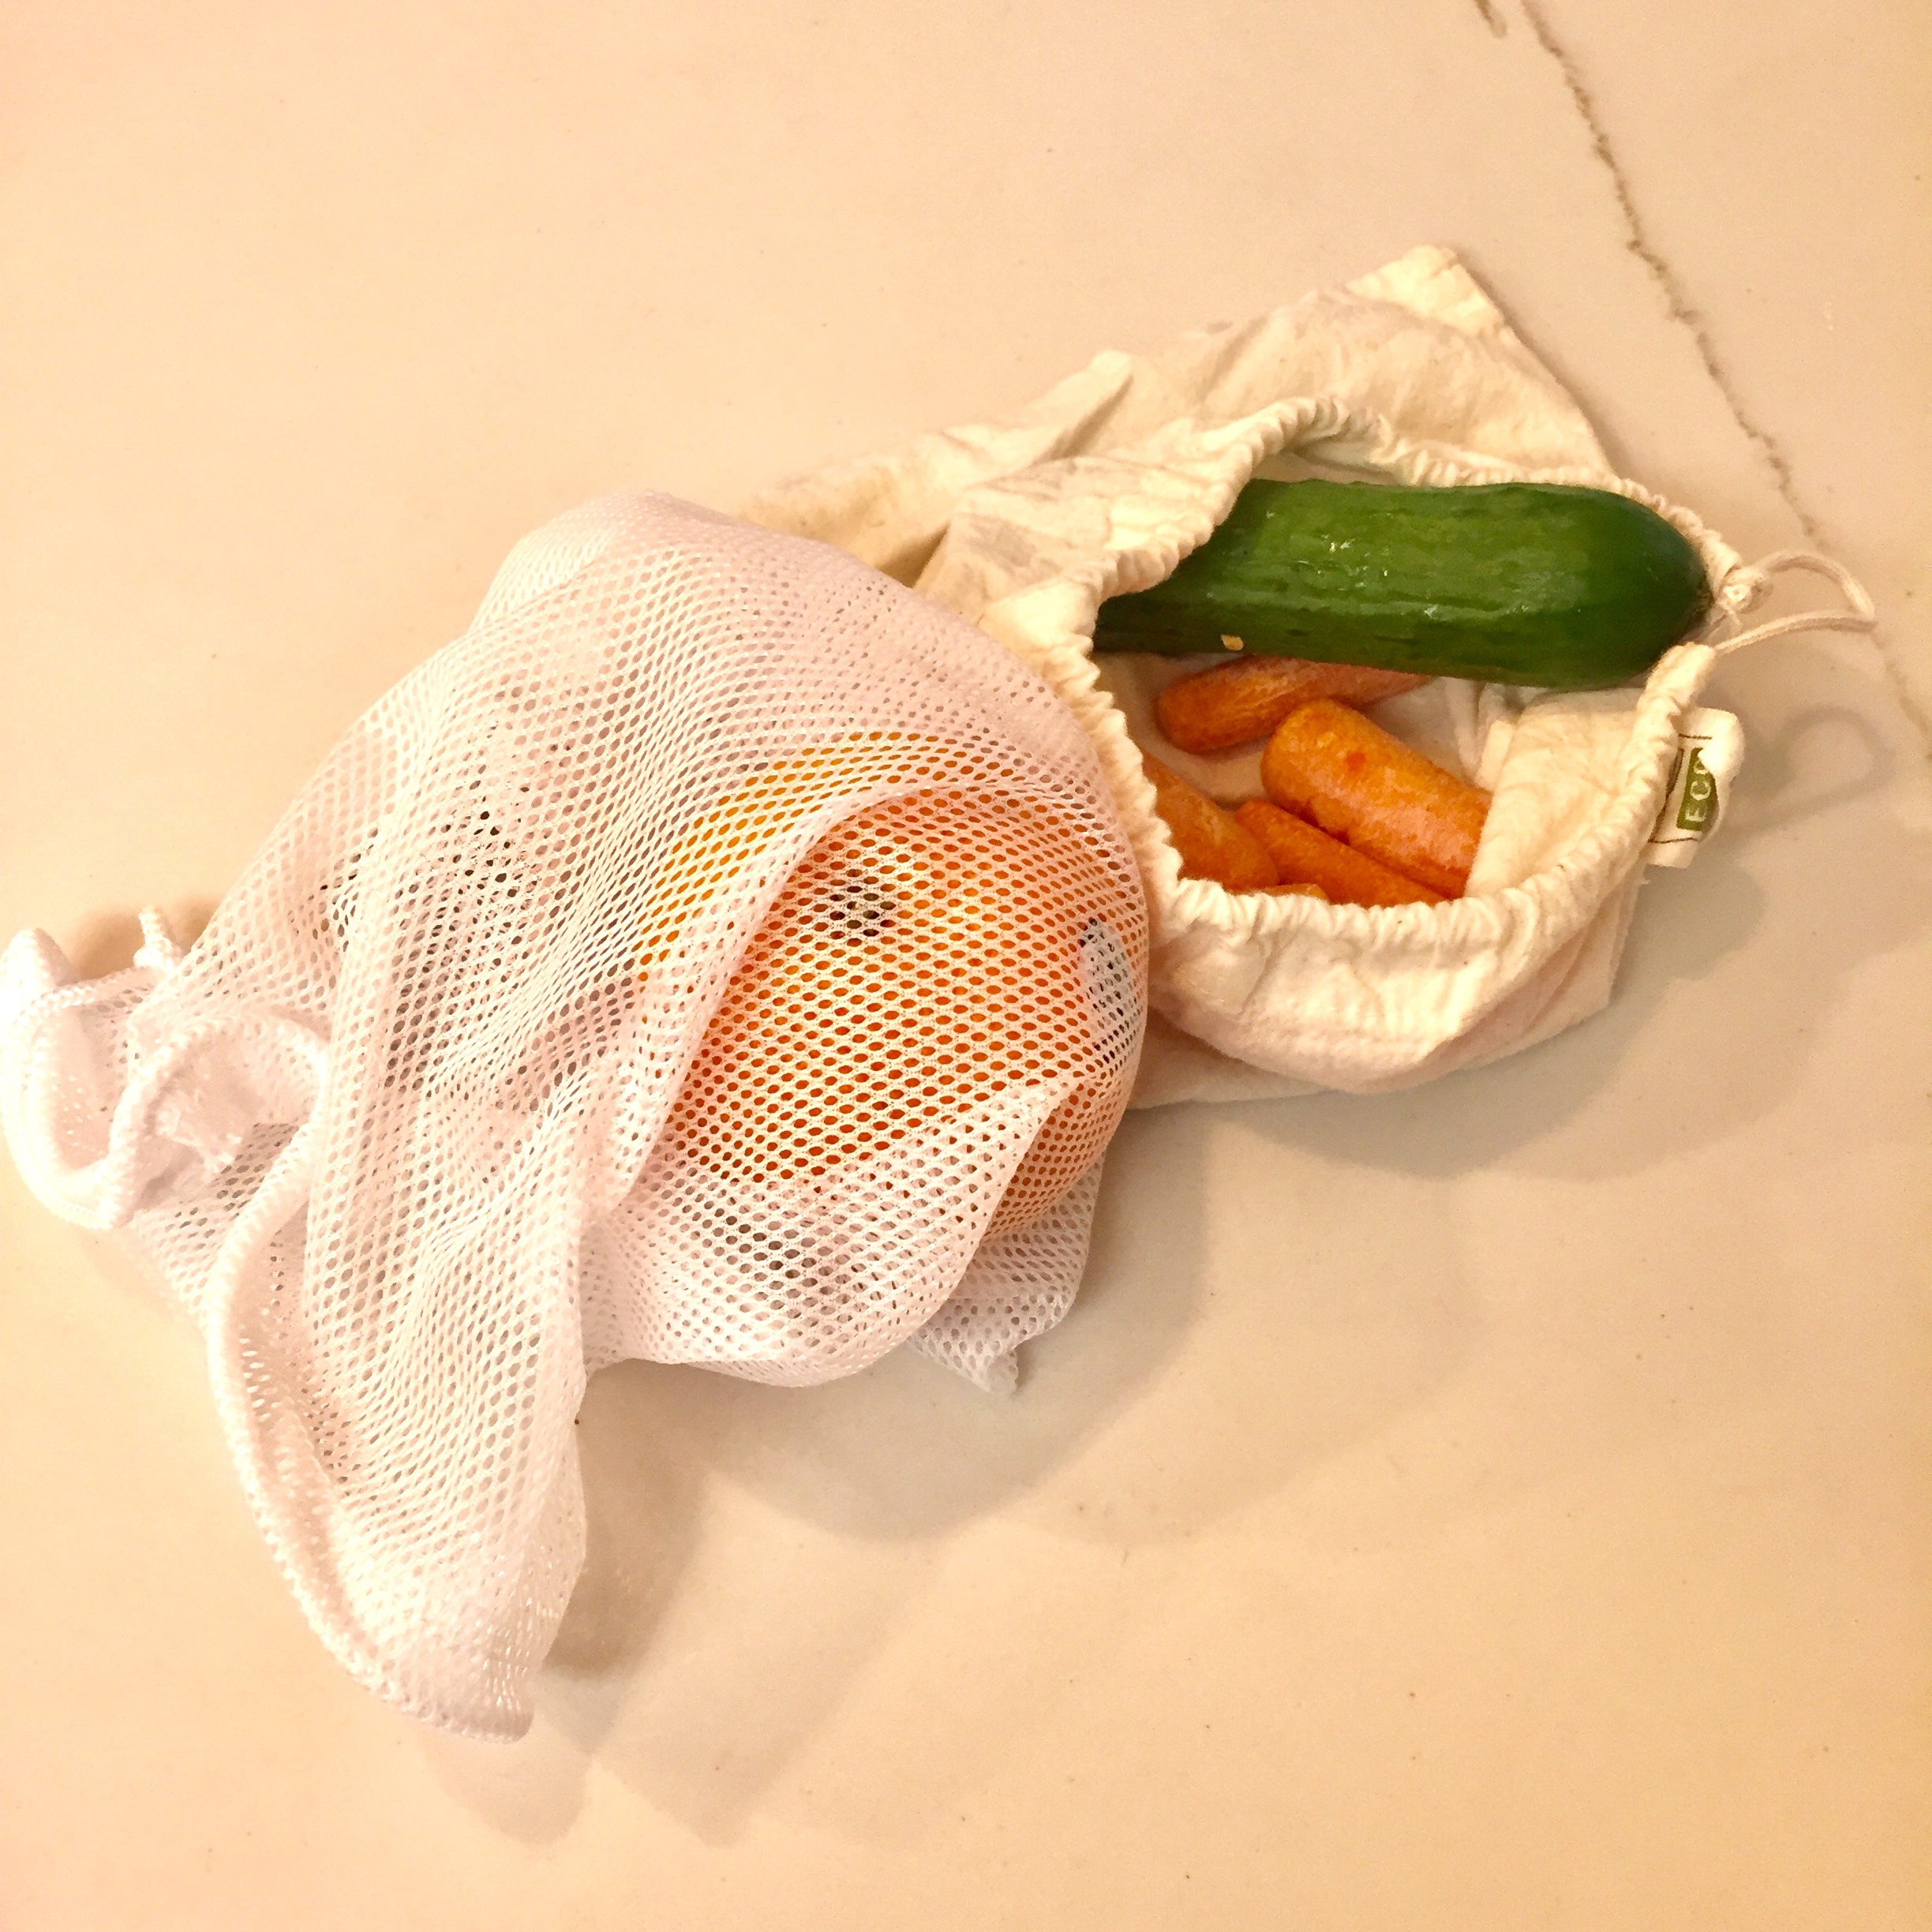 Fruit and Vegetable Bags - Keep those daily fruit and vegetable rations in mesh or canvasbags for ideal carrying. These can also be used at the supermarket when you buy produce and want to avoid plastic bags. WIN!